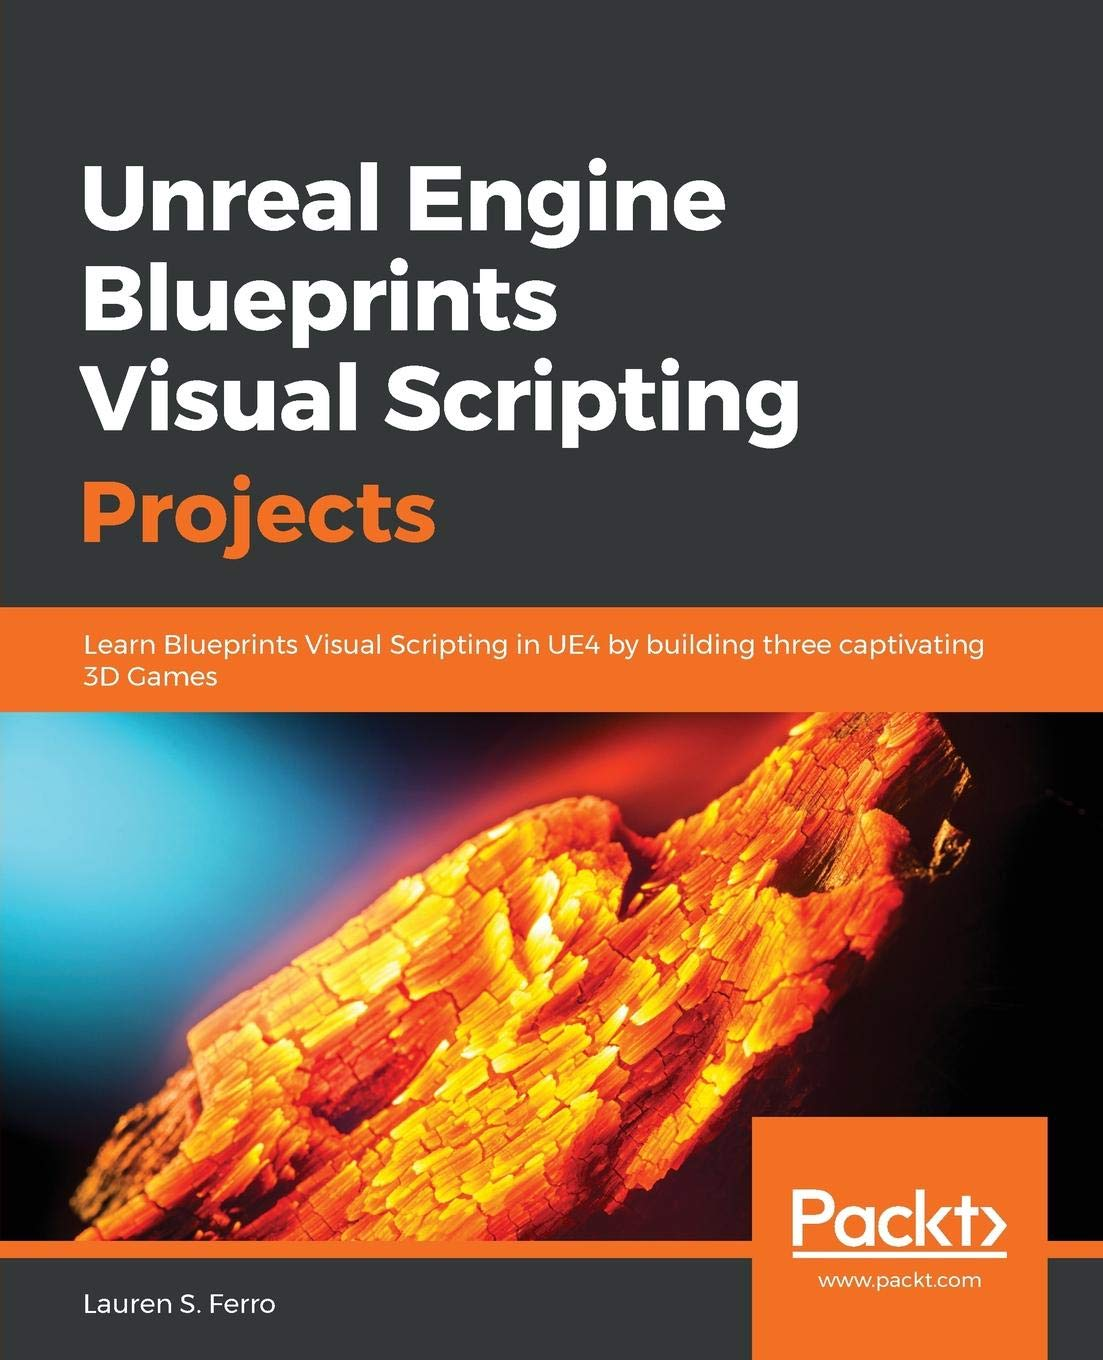 Unreal Engine Blueprints Visual Scripting Projects: Learn